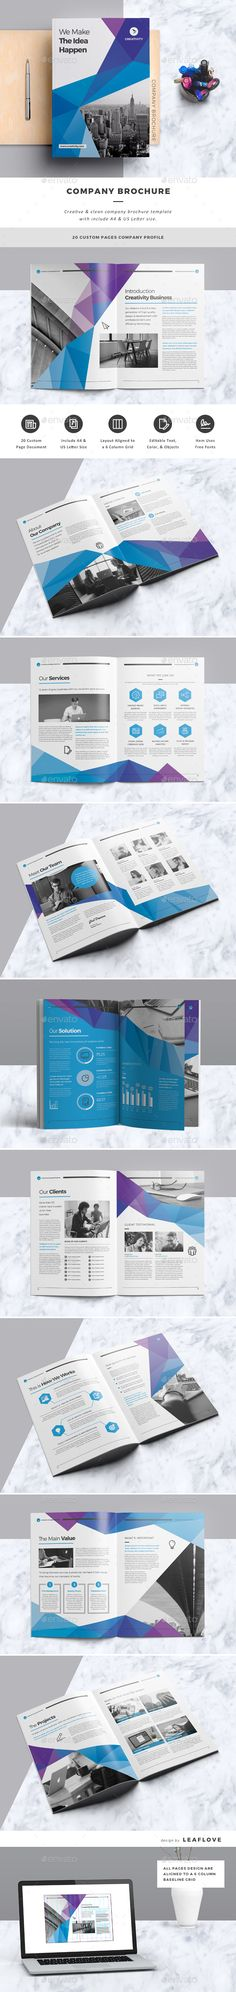 The Company Profile Brochure Template Indesign Indd Company